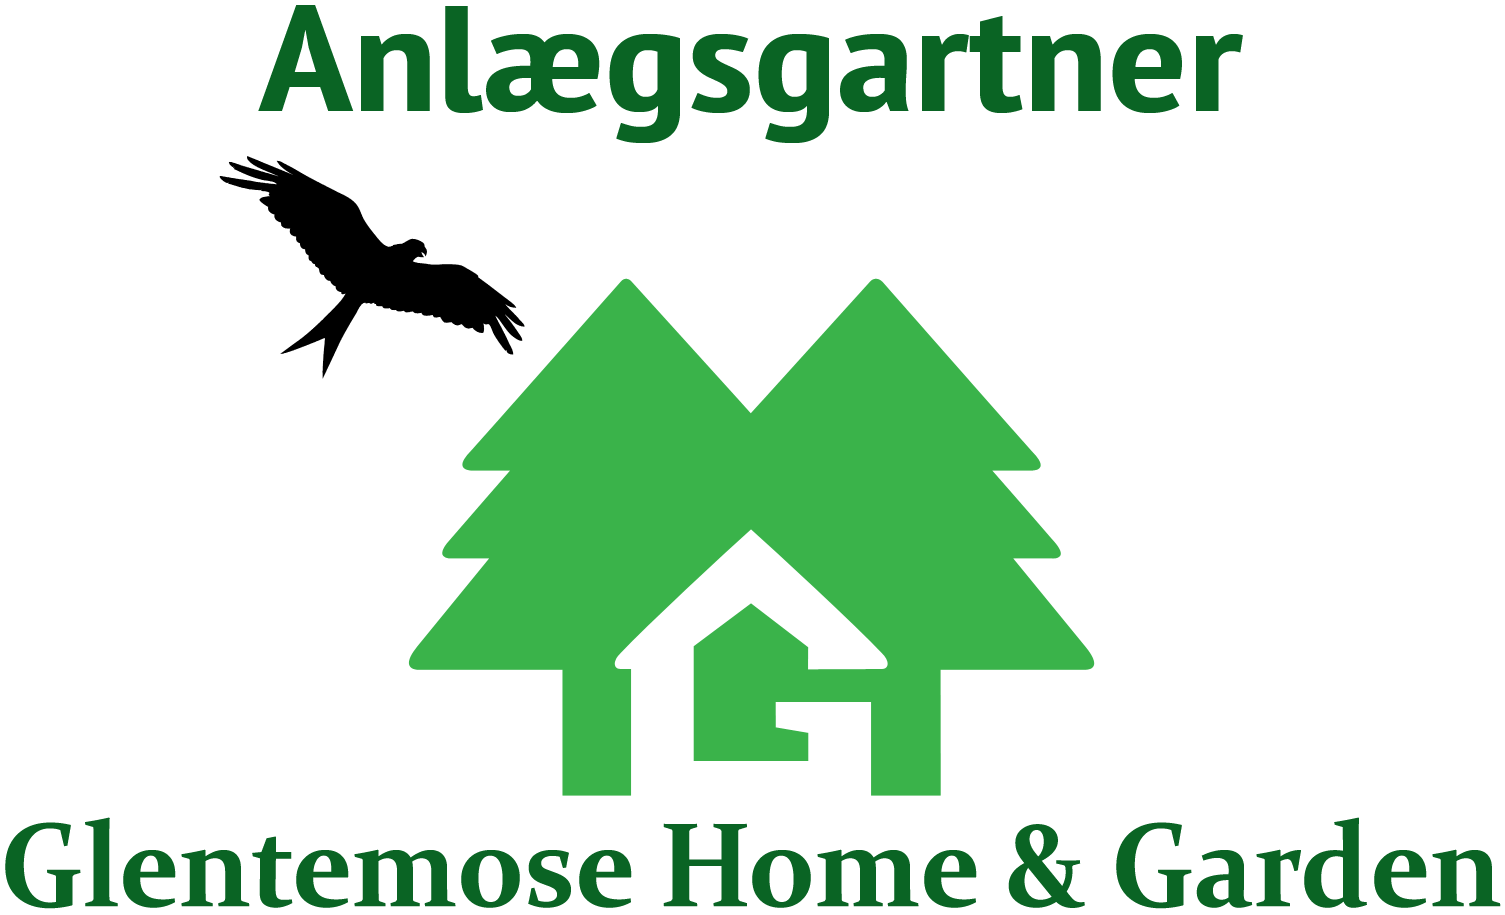 Glentemose Home & Garden